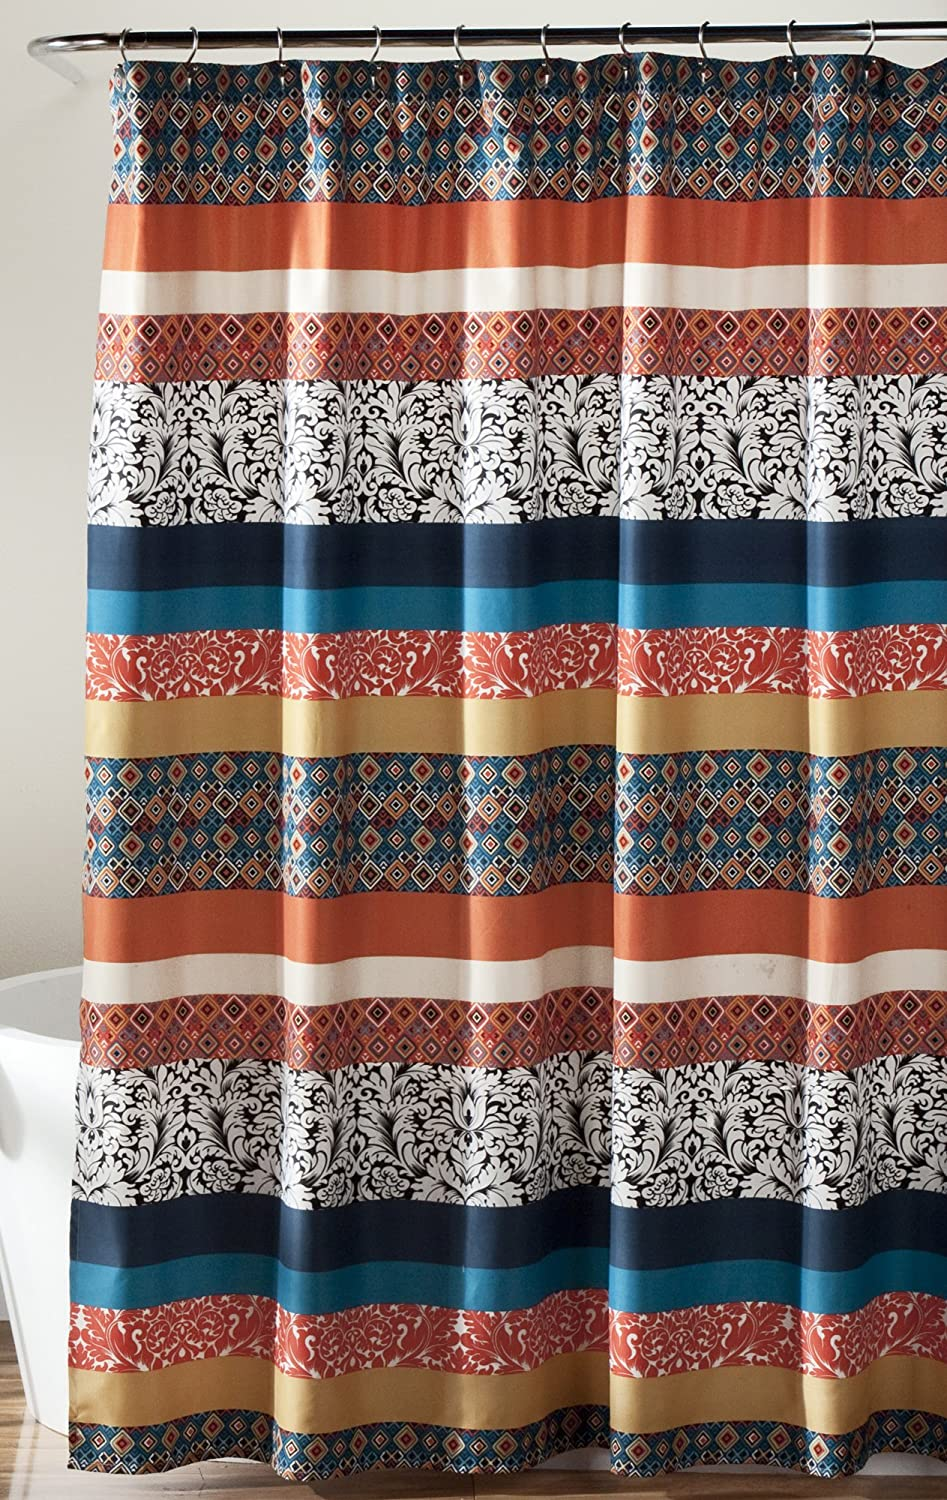 "Lush Decor Bohemian Striped Shower Curtain Fabric Bathroom - Colorful Geometric and Floral Design, 72"" x 72"", Turquoise and Orange"